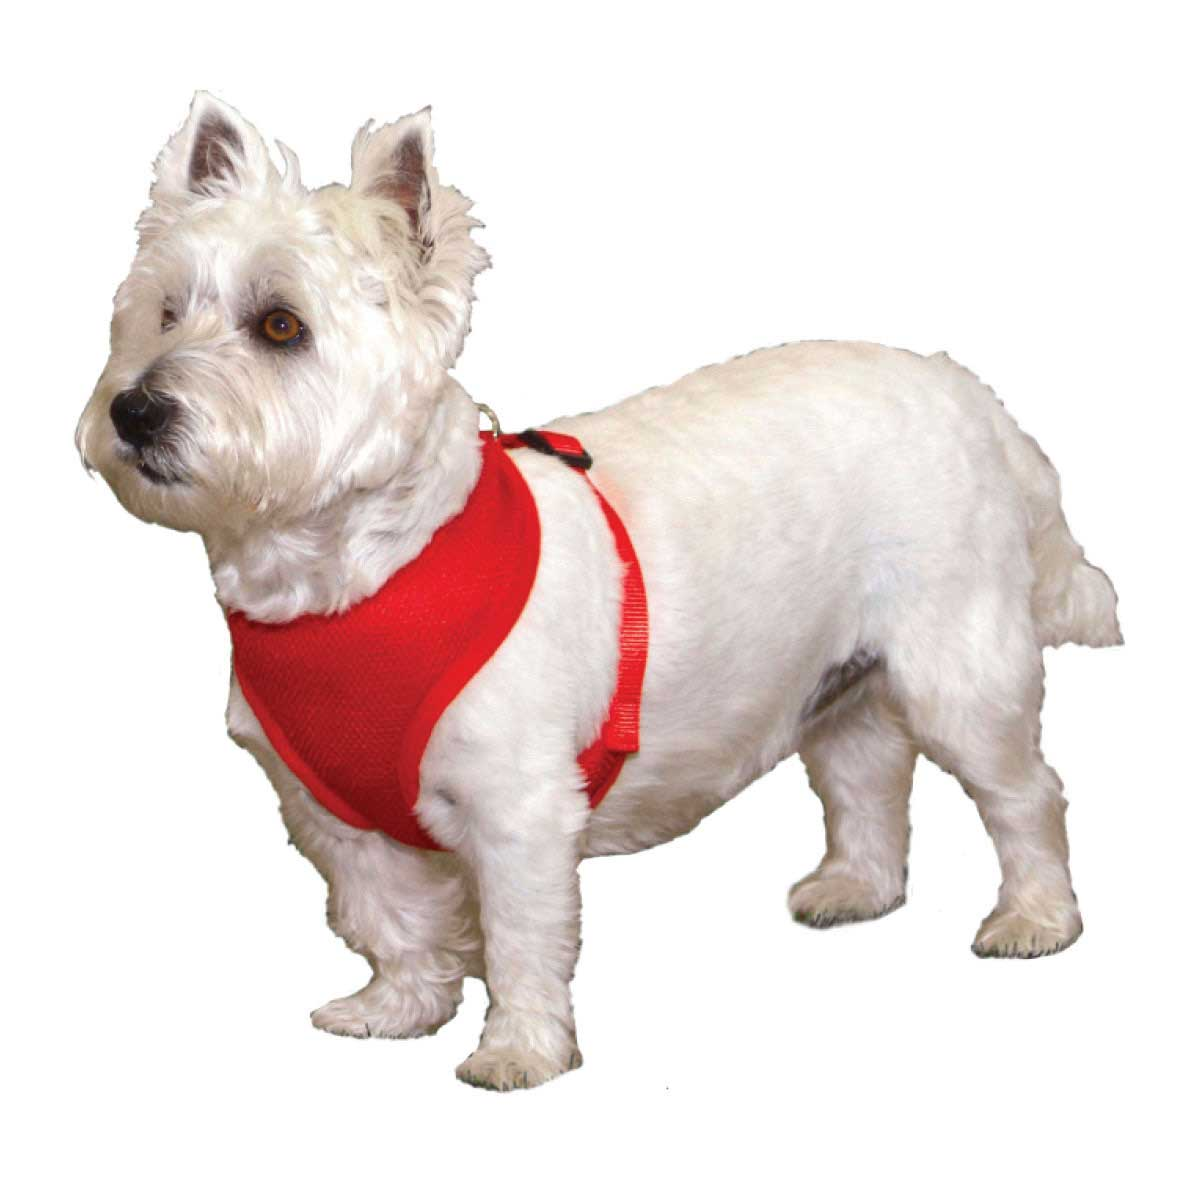 Coastal Comfort Soft Nylon Harness XX-Small 3/8 inch